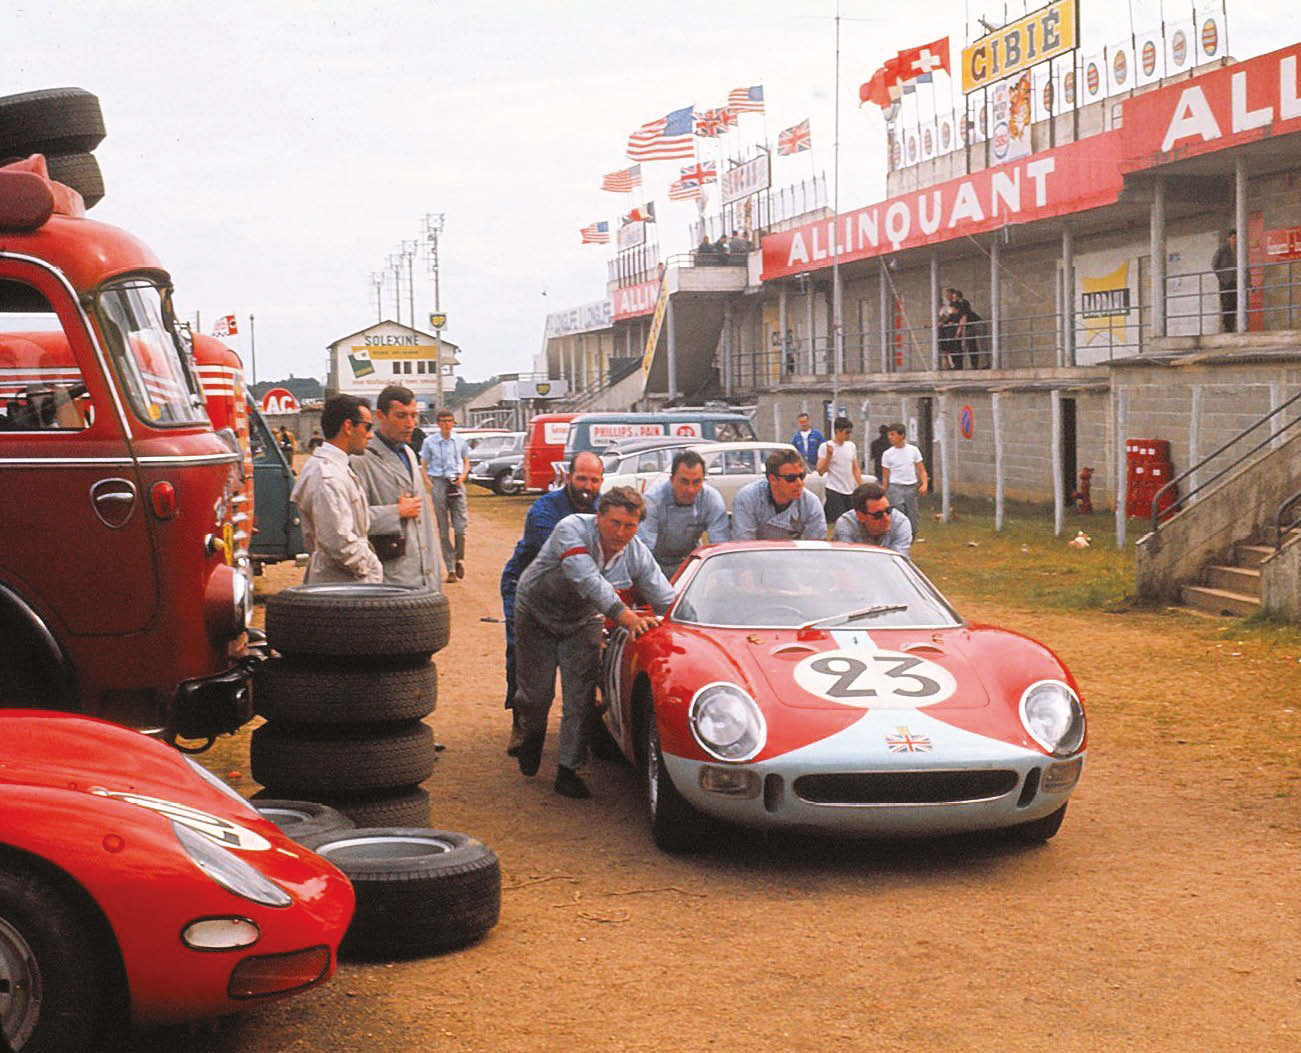 The Maranello Concessionaires Ltd Ferrari 275LM of Lucien Bianchi/Mike Salmon is pushed to the grid. It would retire after eight hours with gearbox failure